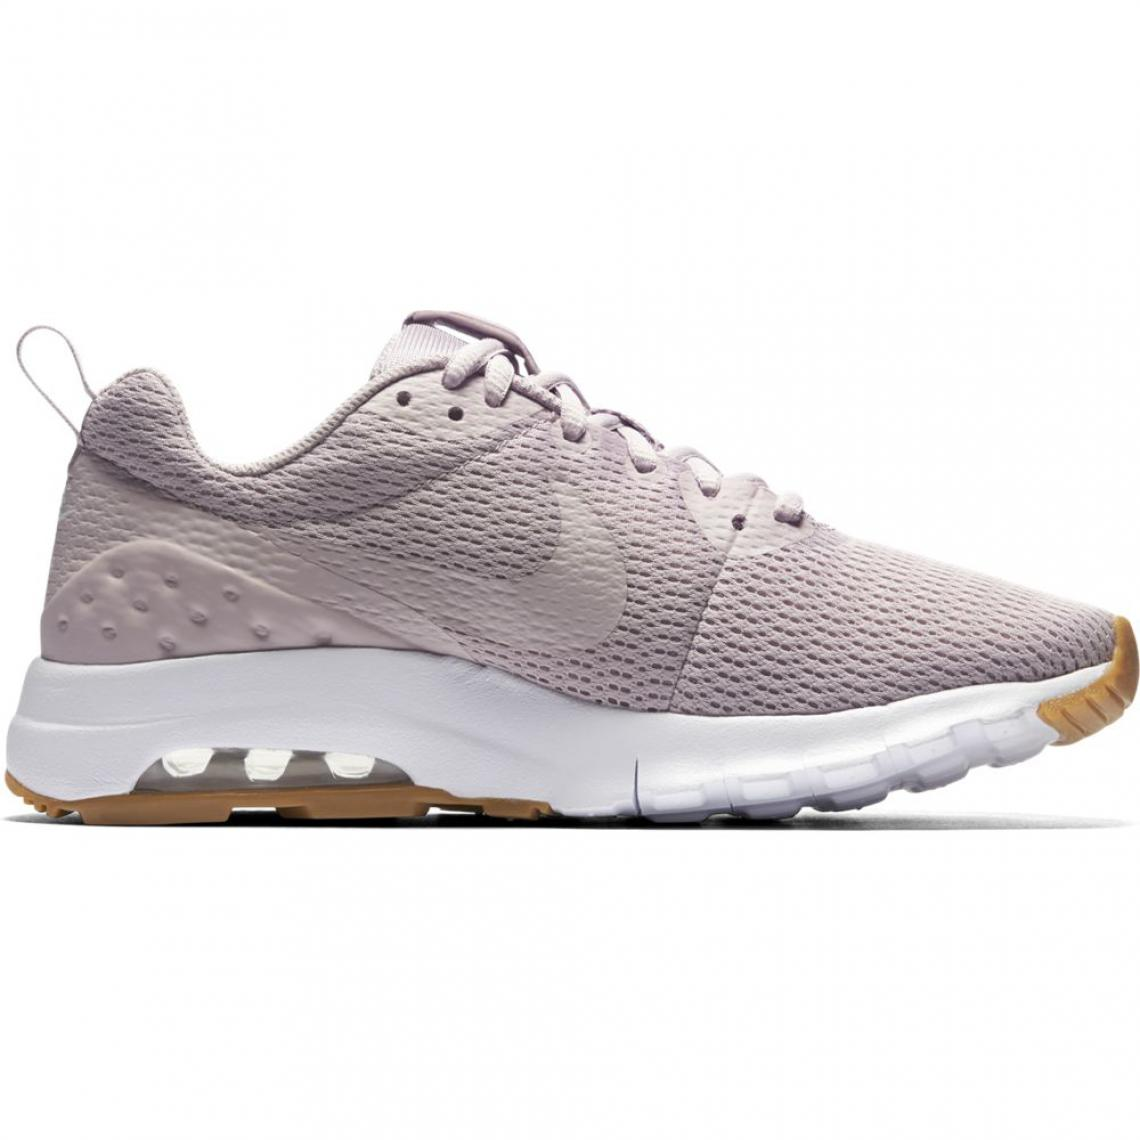 Wmns Air Max Motion LW Nike Sportswear | 3 SUISSES